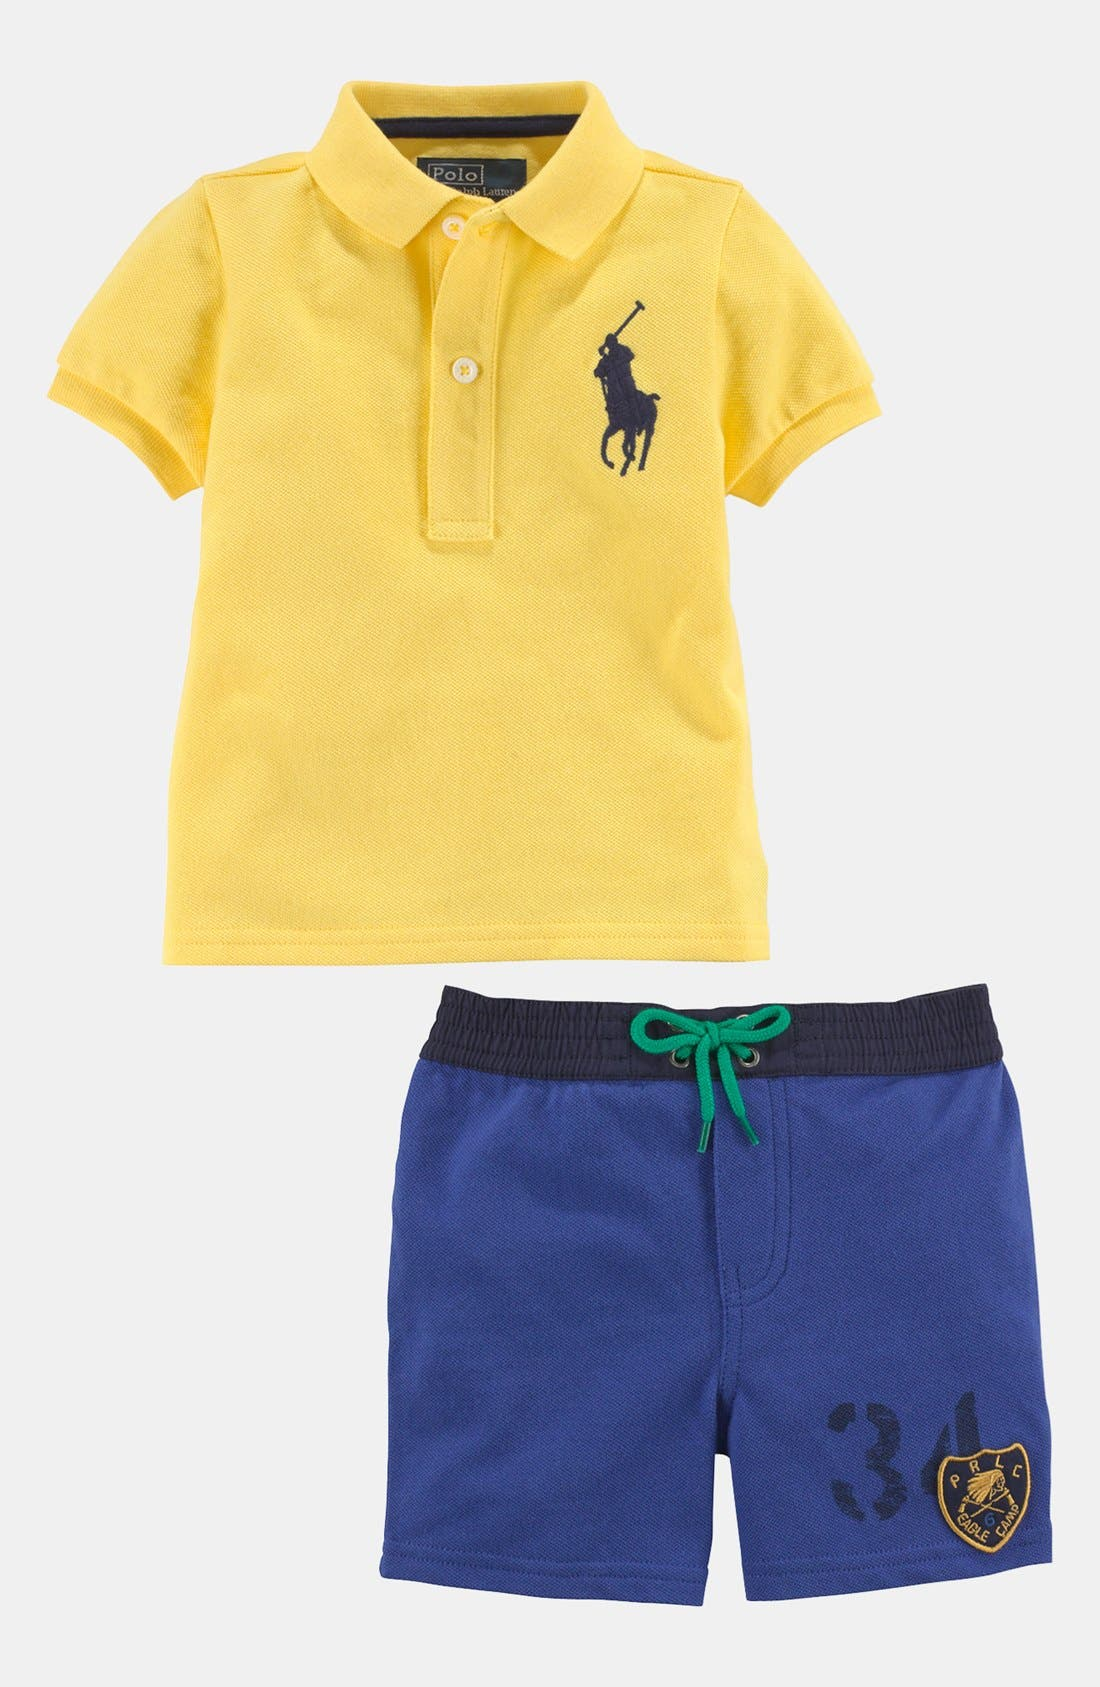 Alternate Image 1 Selected - Ralph Lauren Colorblock Shirt & Shorts (Baby)